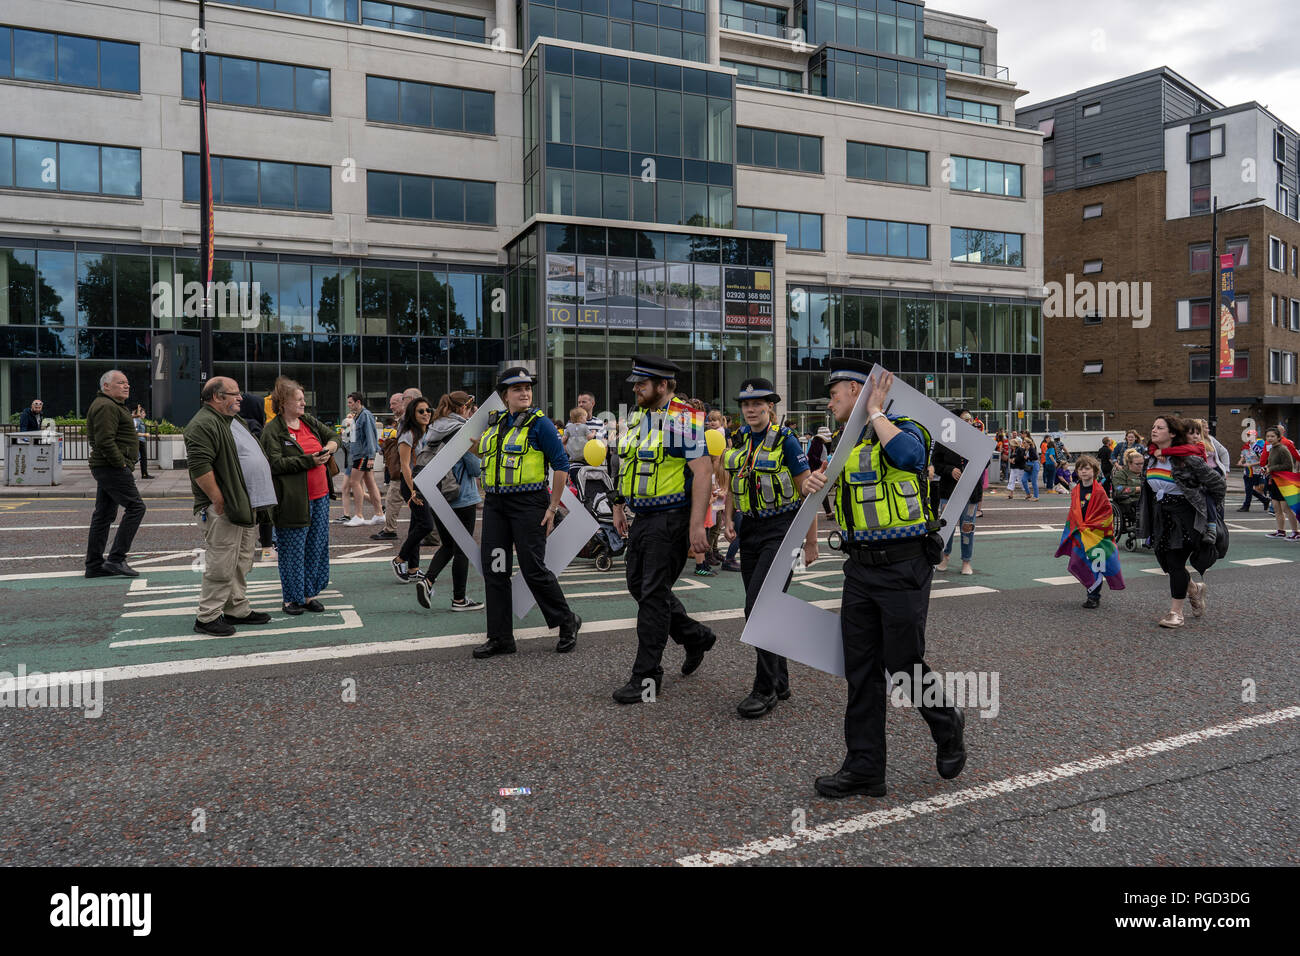 Cardiff, Wales, August 25, 2018: Police constables participate at the  Annual Pride Cymru Parade  in Cardiff, Wales on August 25, 2018 Credit: Daniel Damaschin/Alamy Live News - Stock Image